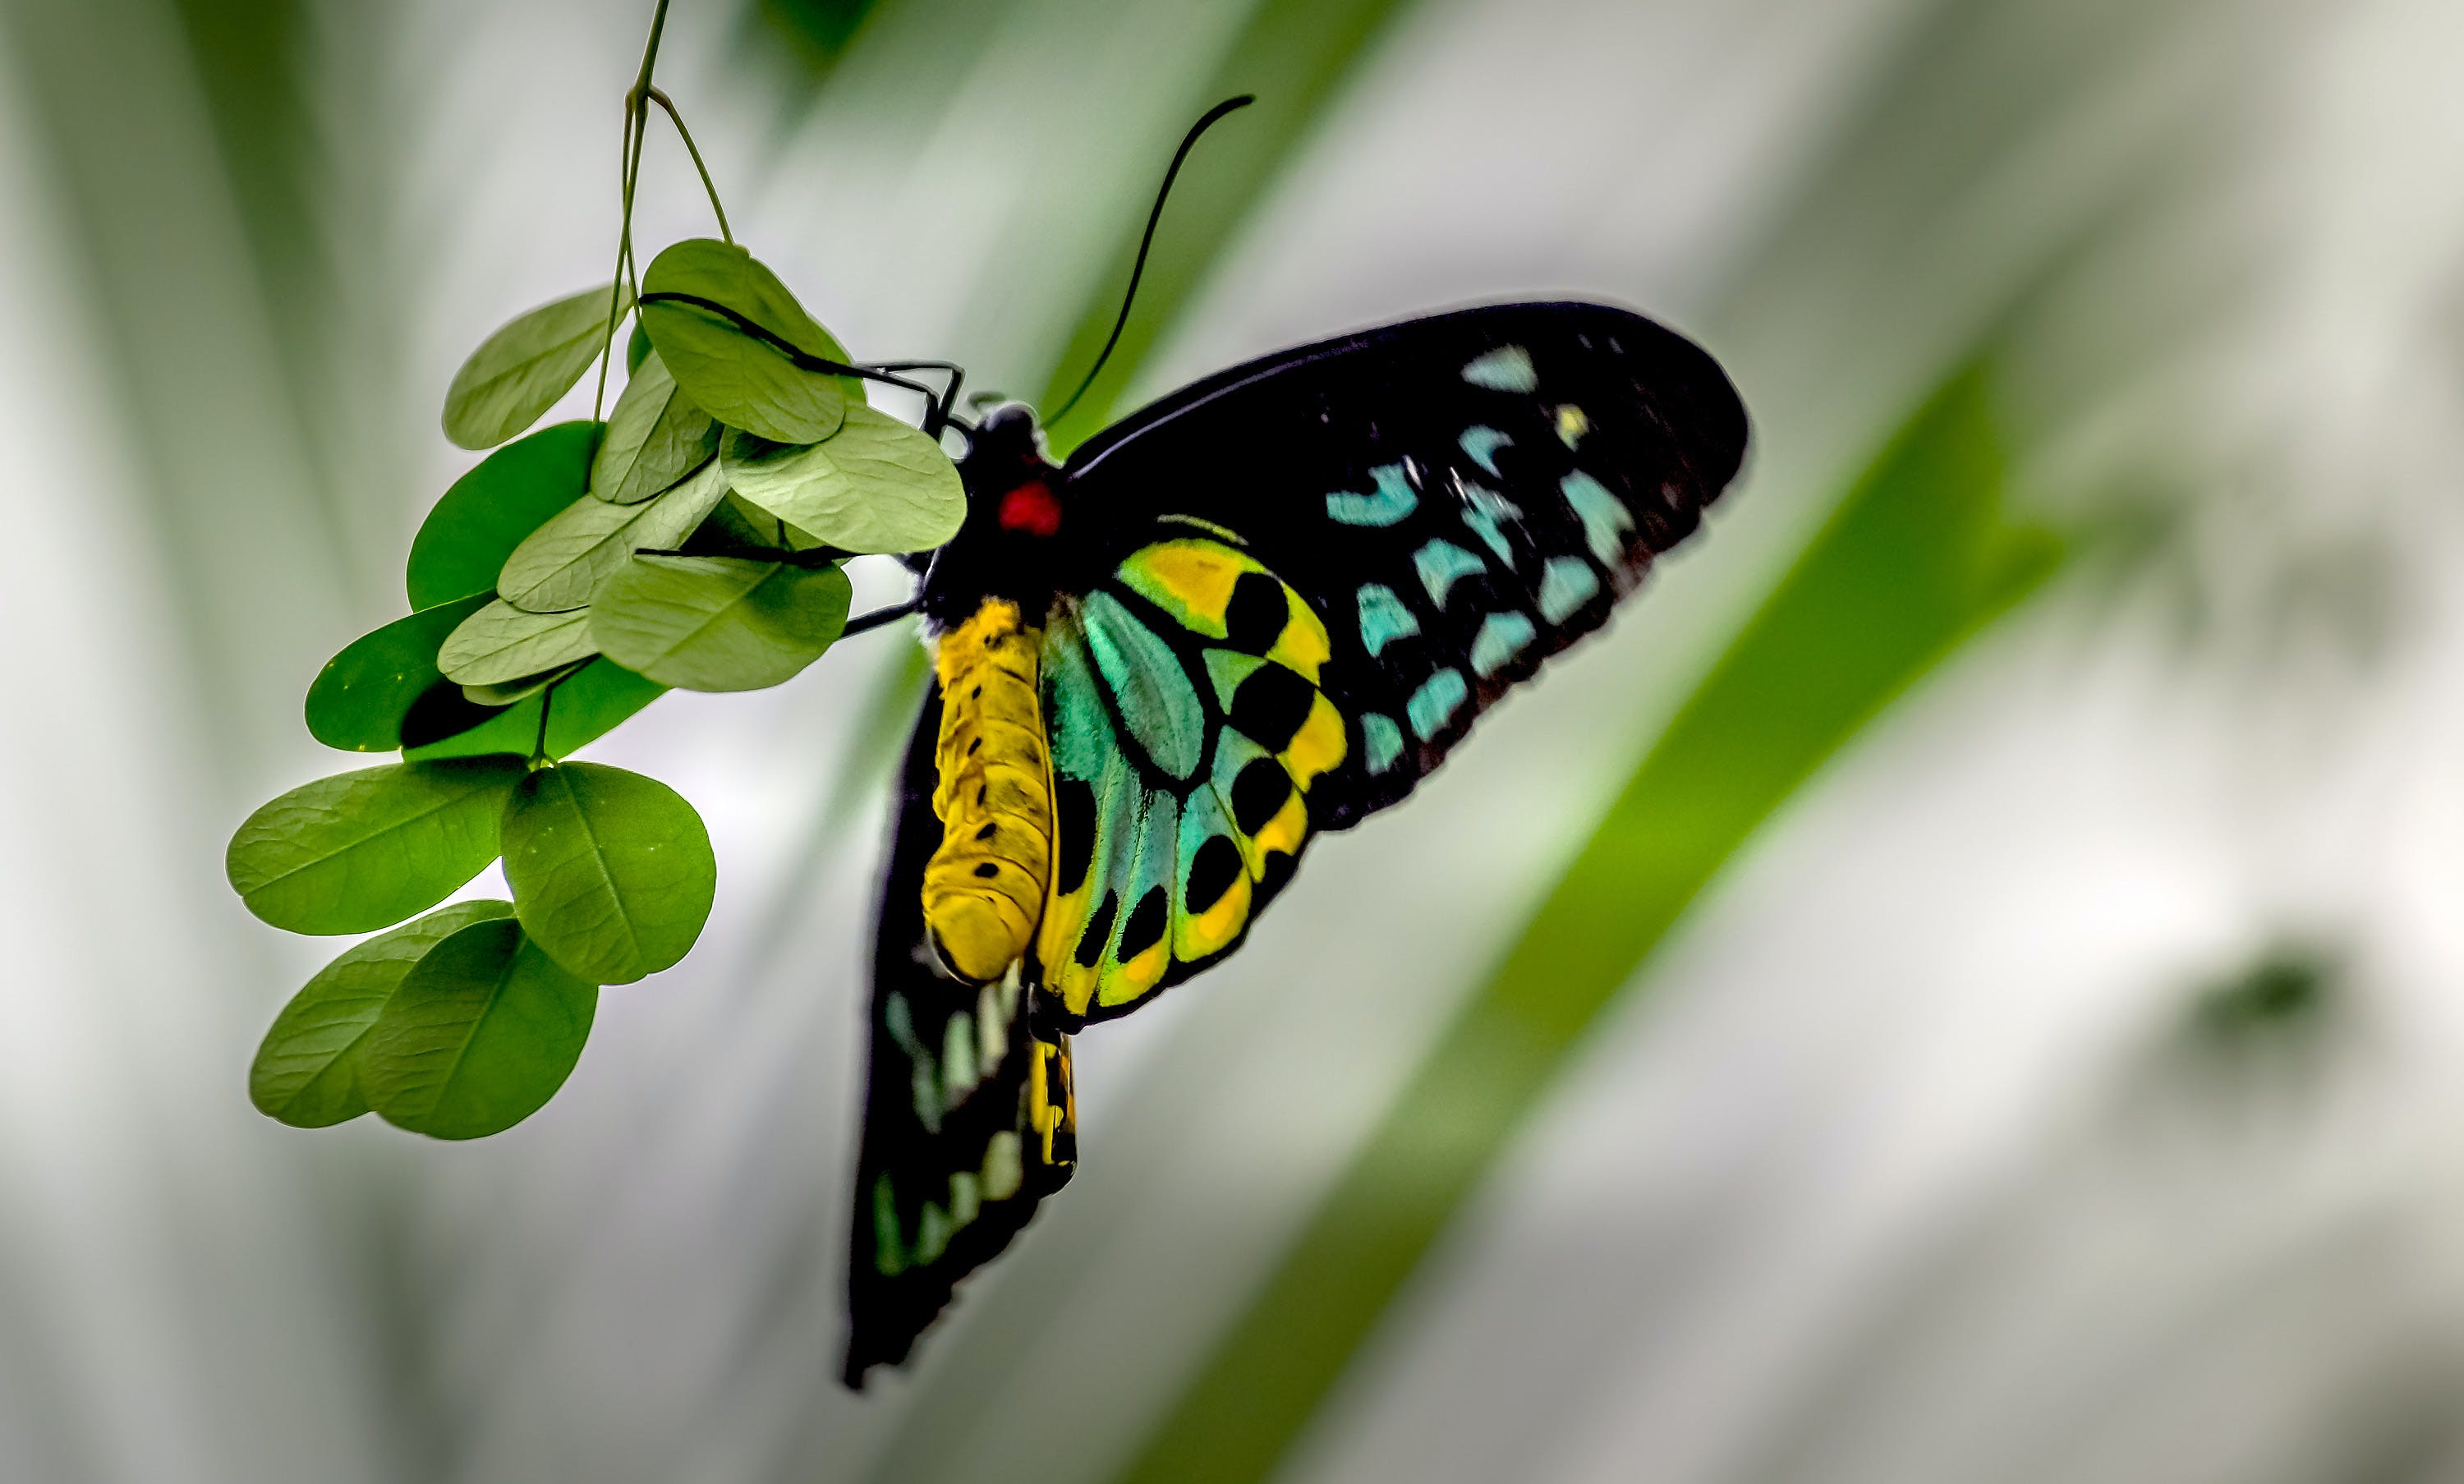 Cairns Birdwing Butterfly Perching on Green Leaf in Selective-focus Photography